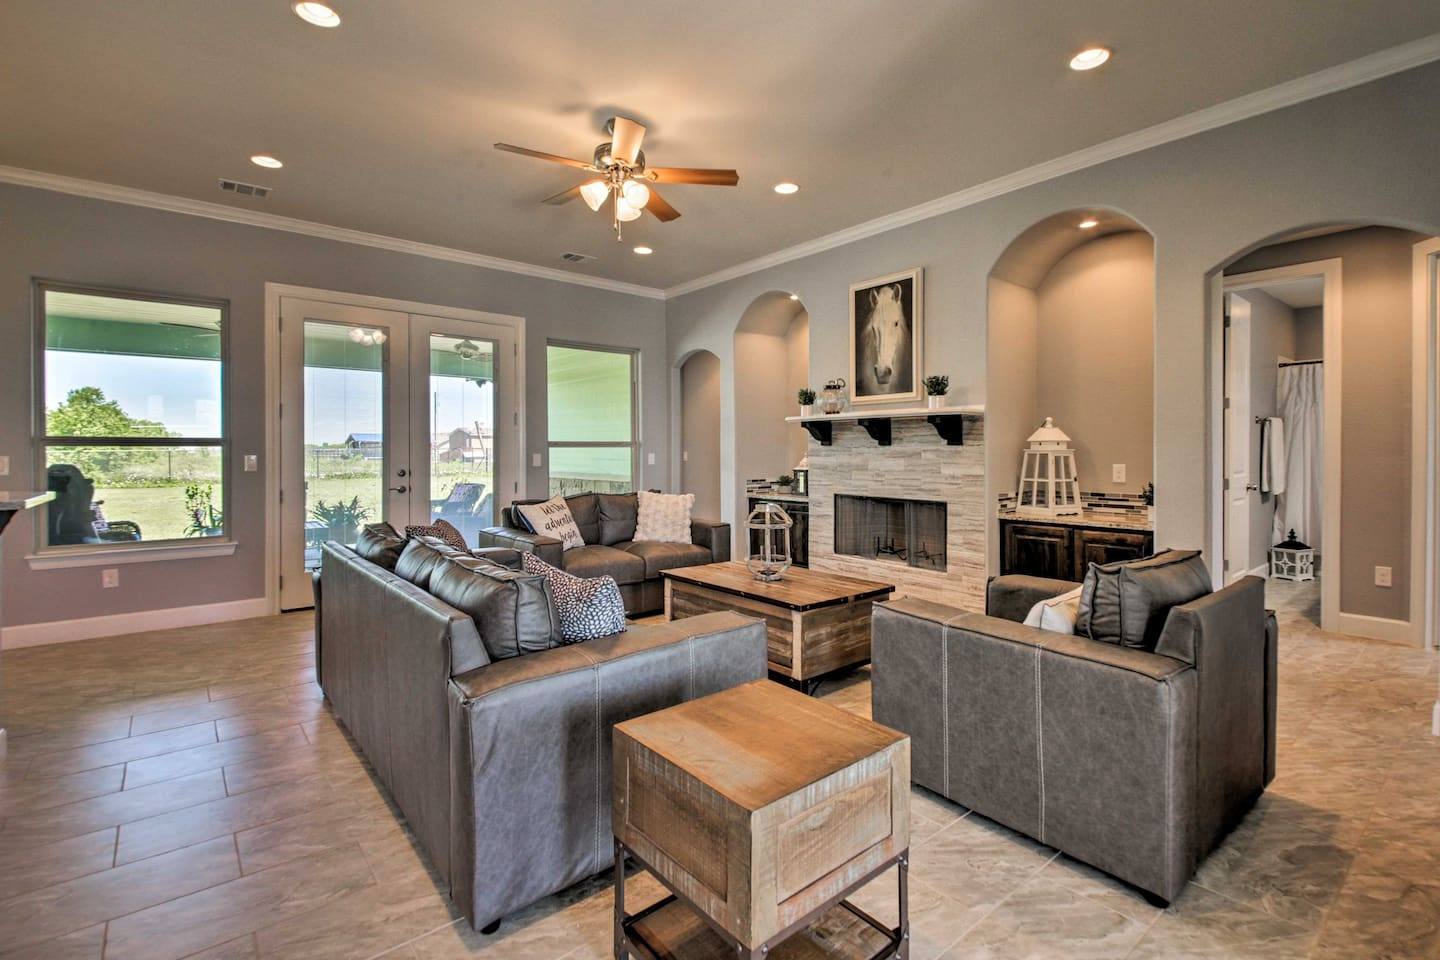 Gather in the living room to discuss plans for the day or play a game of cards.